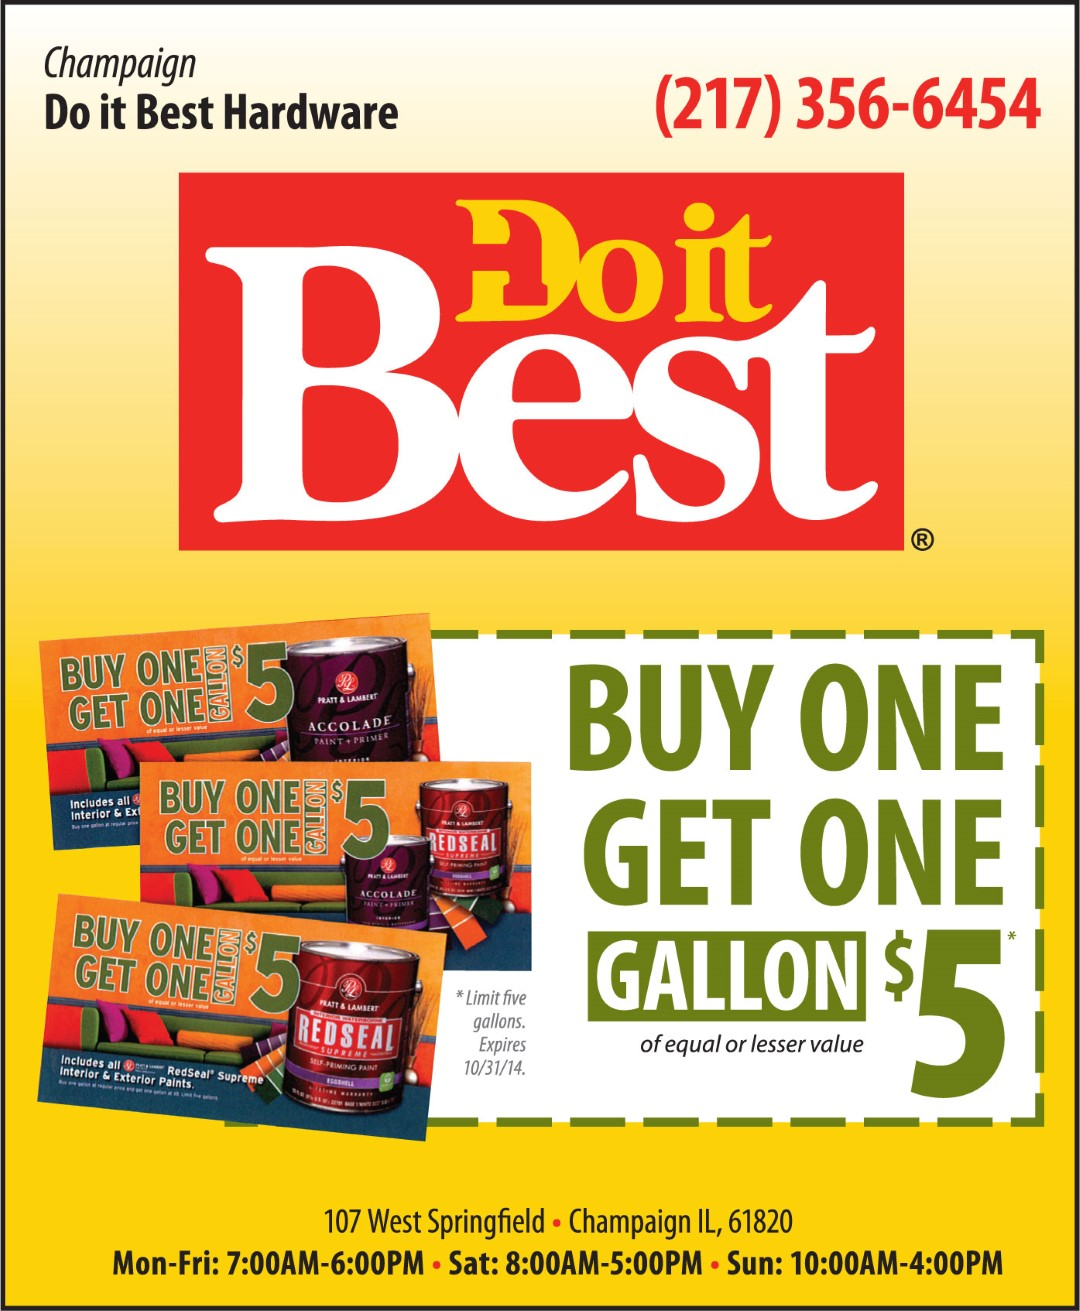 Do it best hardware sj broadcasting llc win gas for a year visit do it best hardware solutioingenieria Image collections